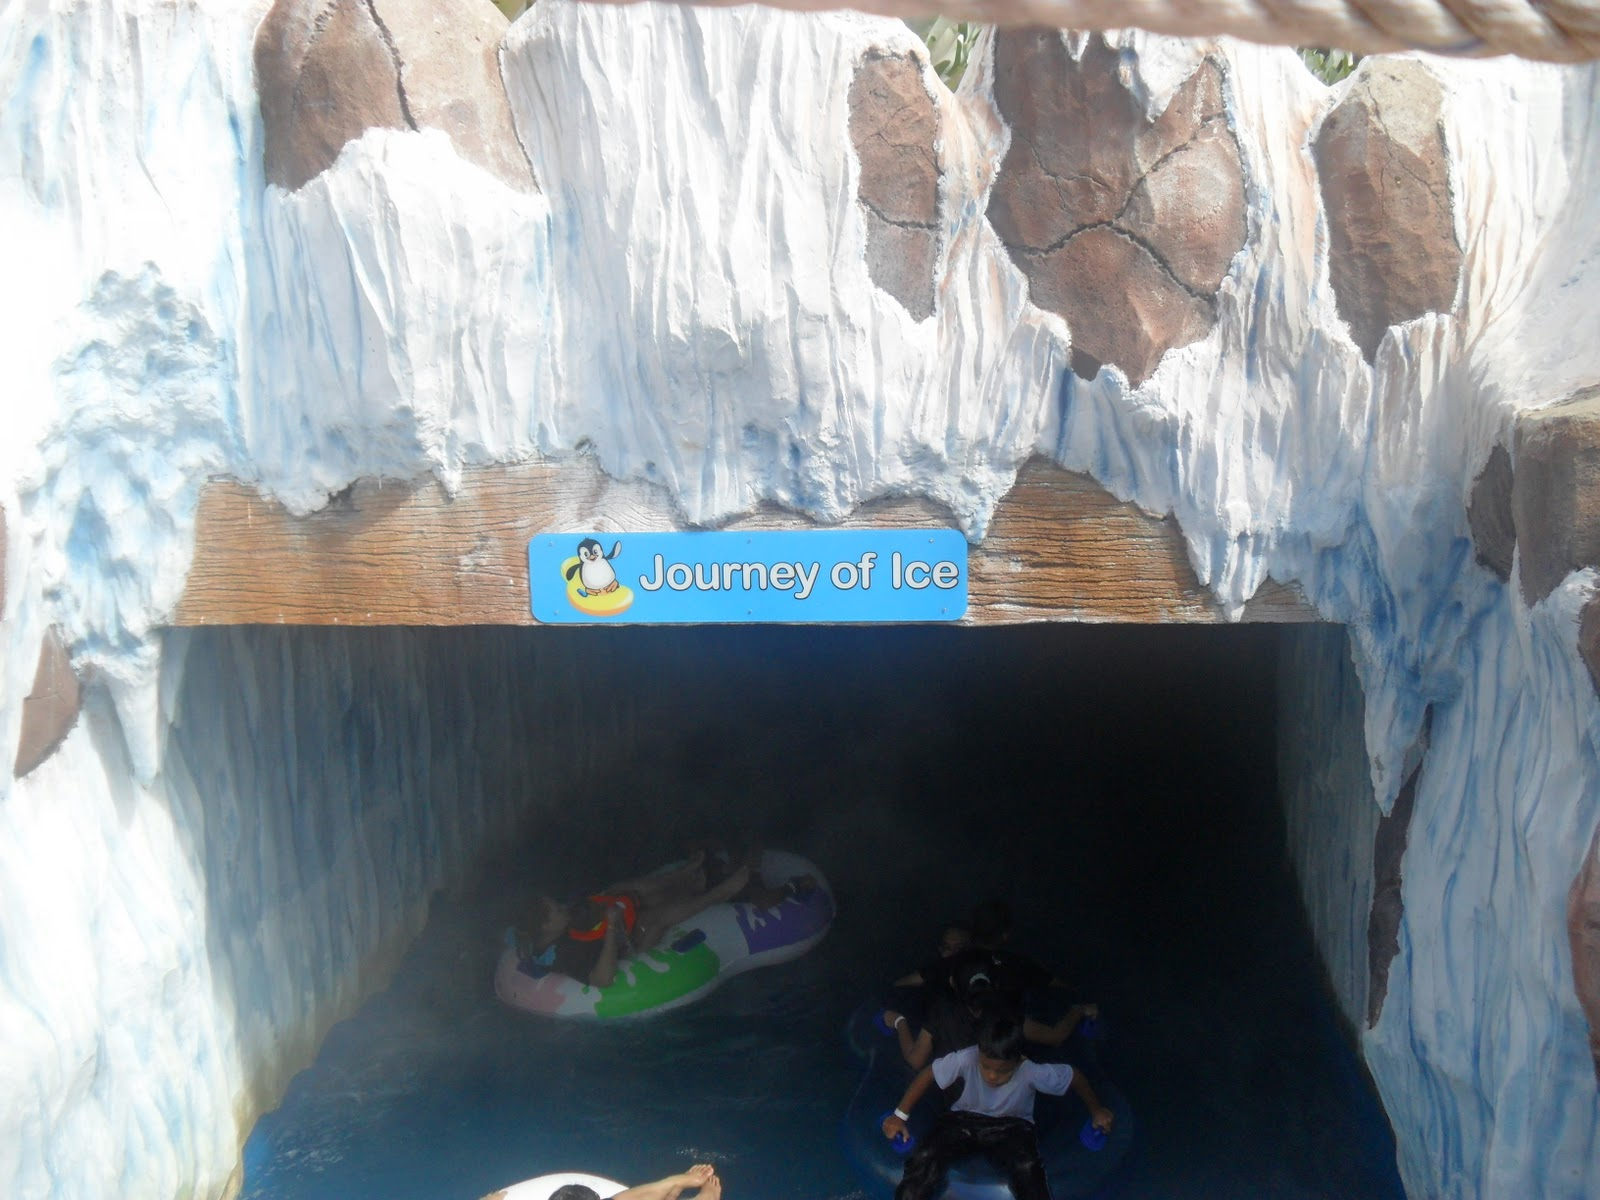 Ice journey - Bukit Gambang Water Park